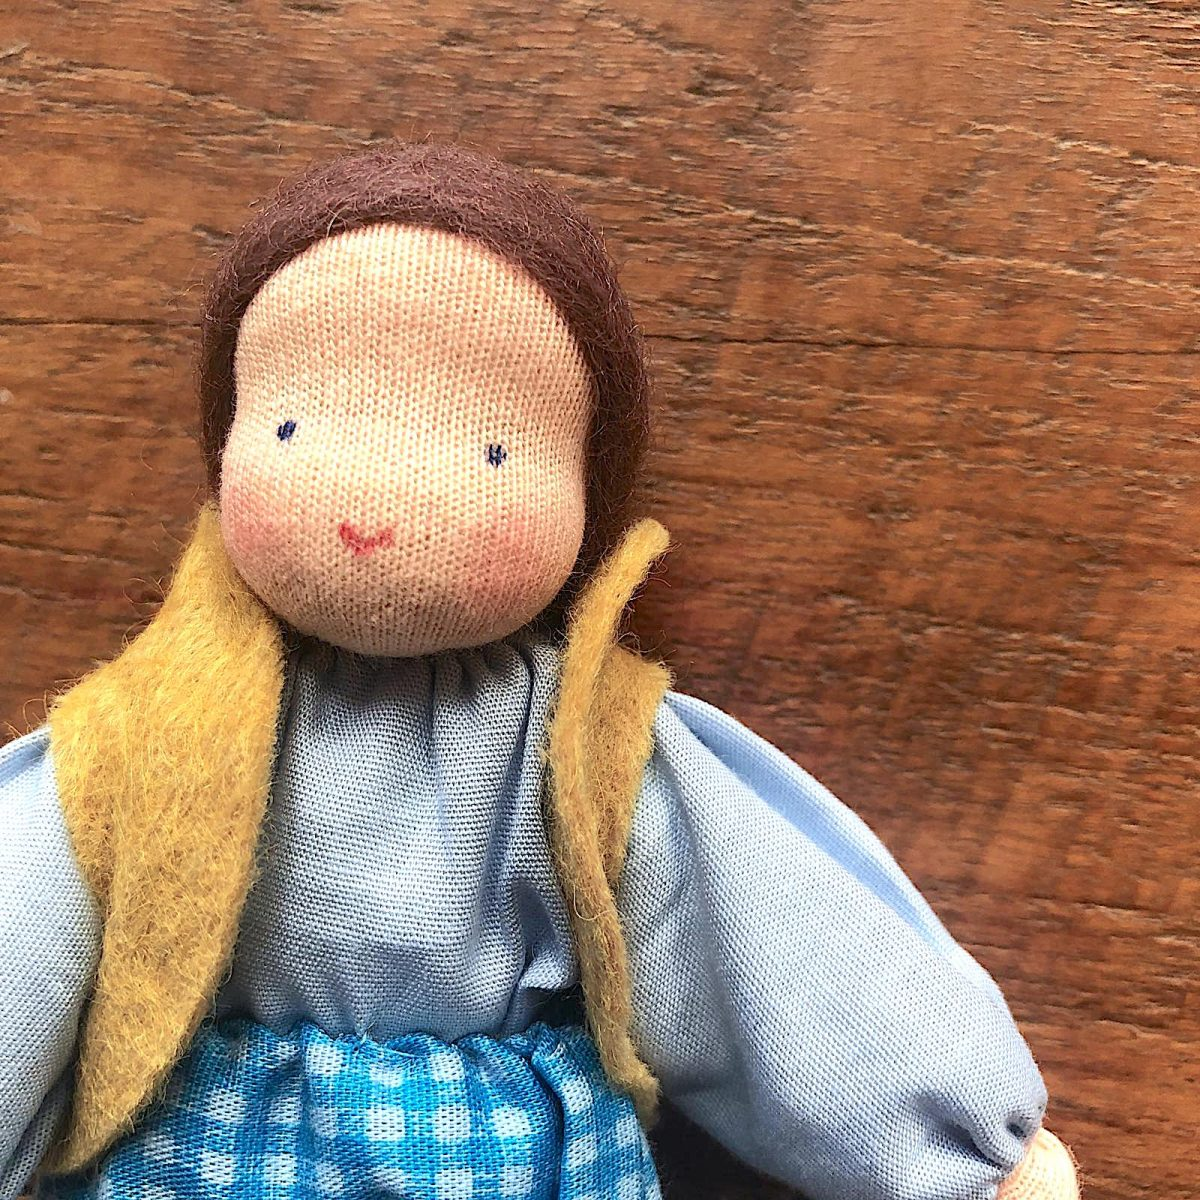 Male evi doll with brown hair